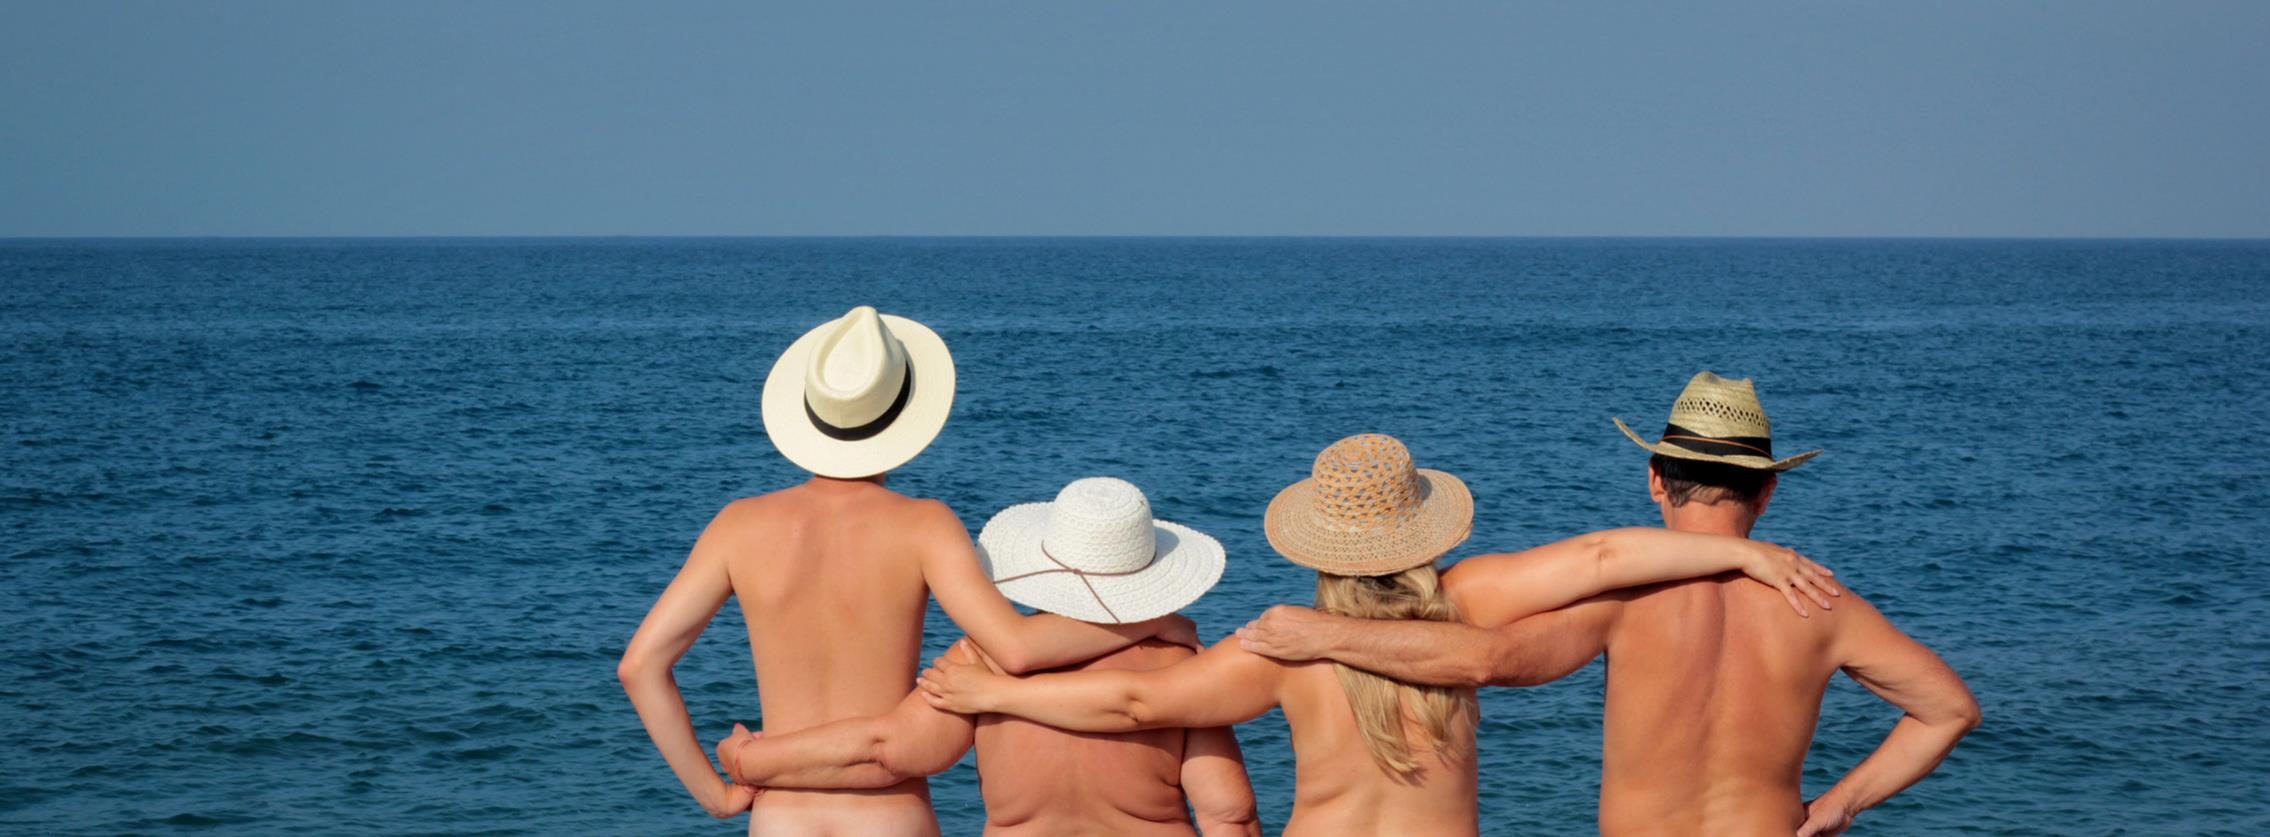 nudist holidays gran canaria